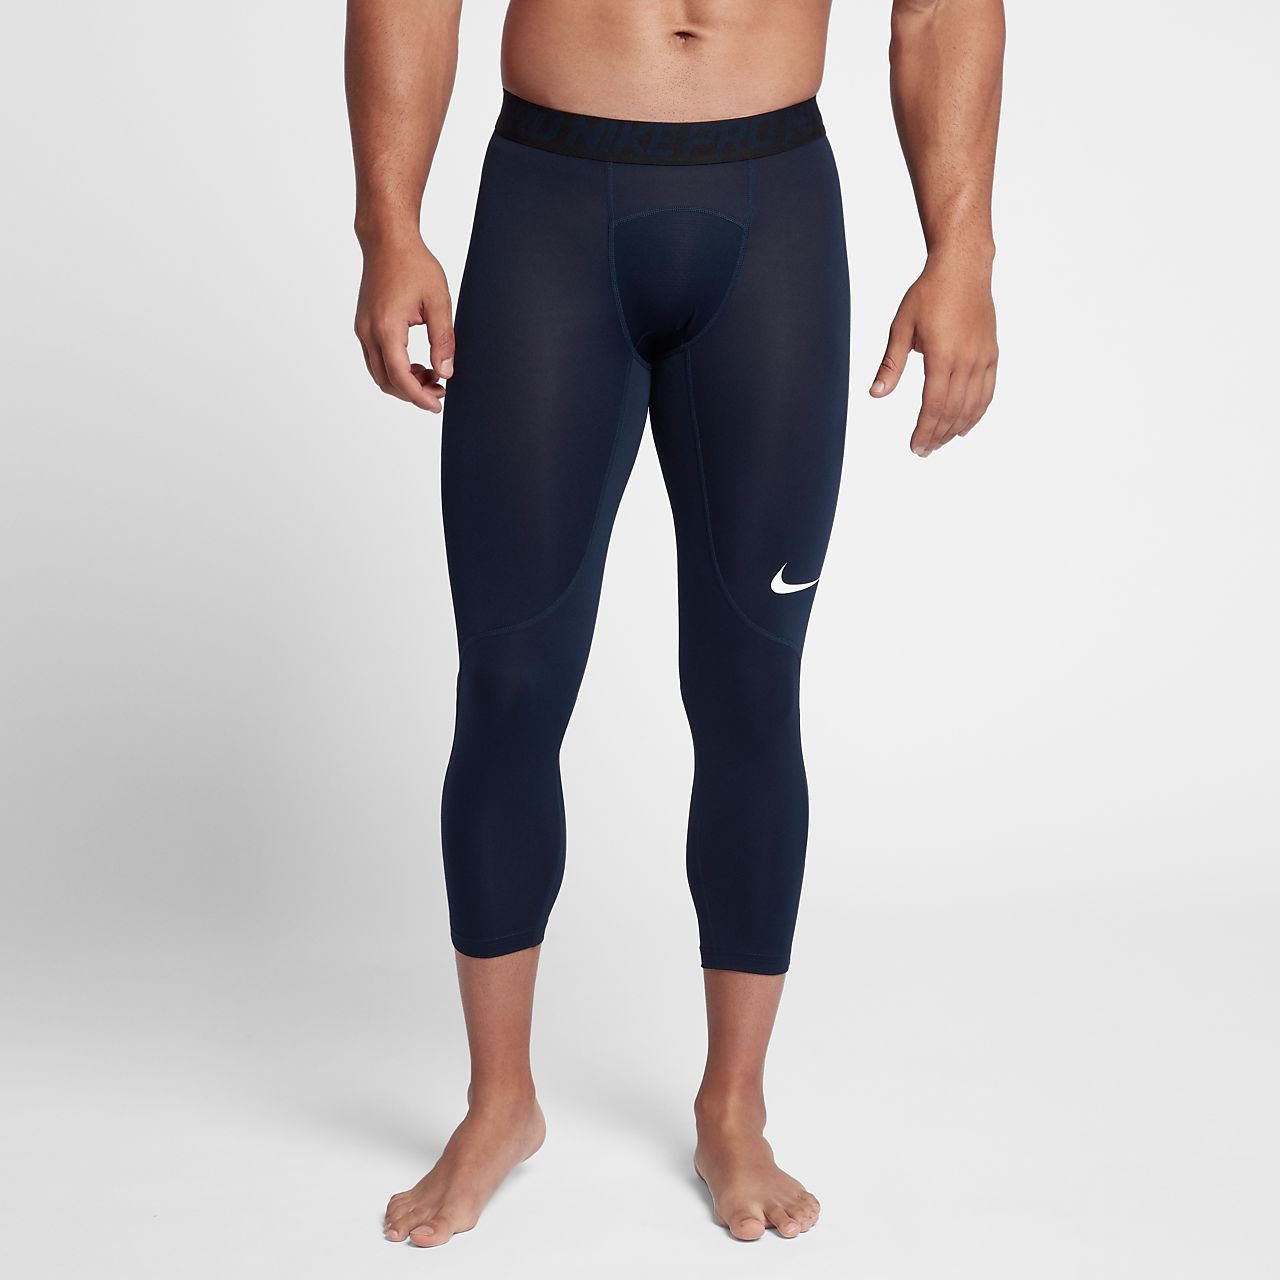 053cff9f Nike Pro Men's 3/4 Training Tights. Nike.com